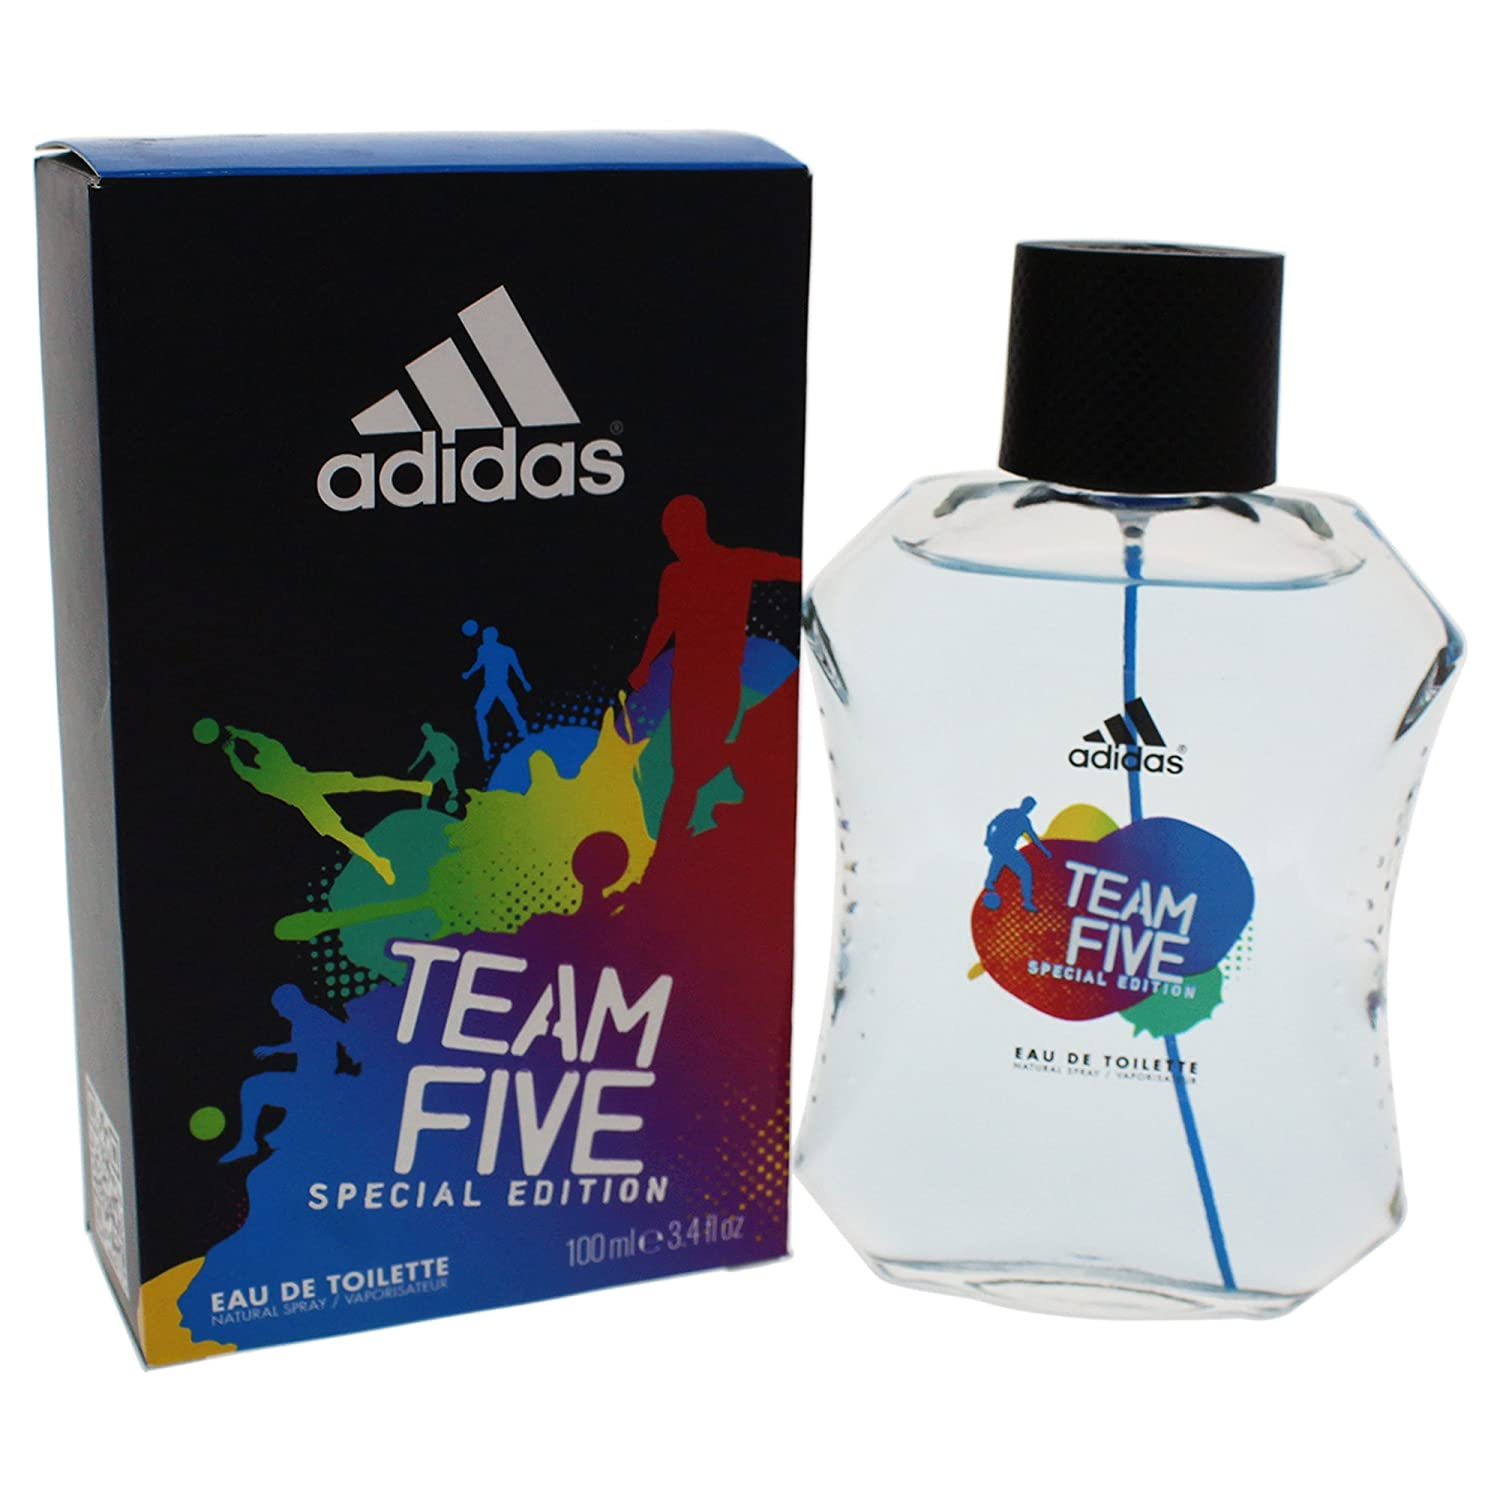 Adidas - Team Five - Eau de toilette para hombres - 100 ml: Amazon.es: Belleza